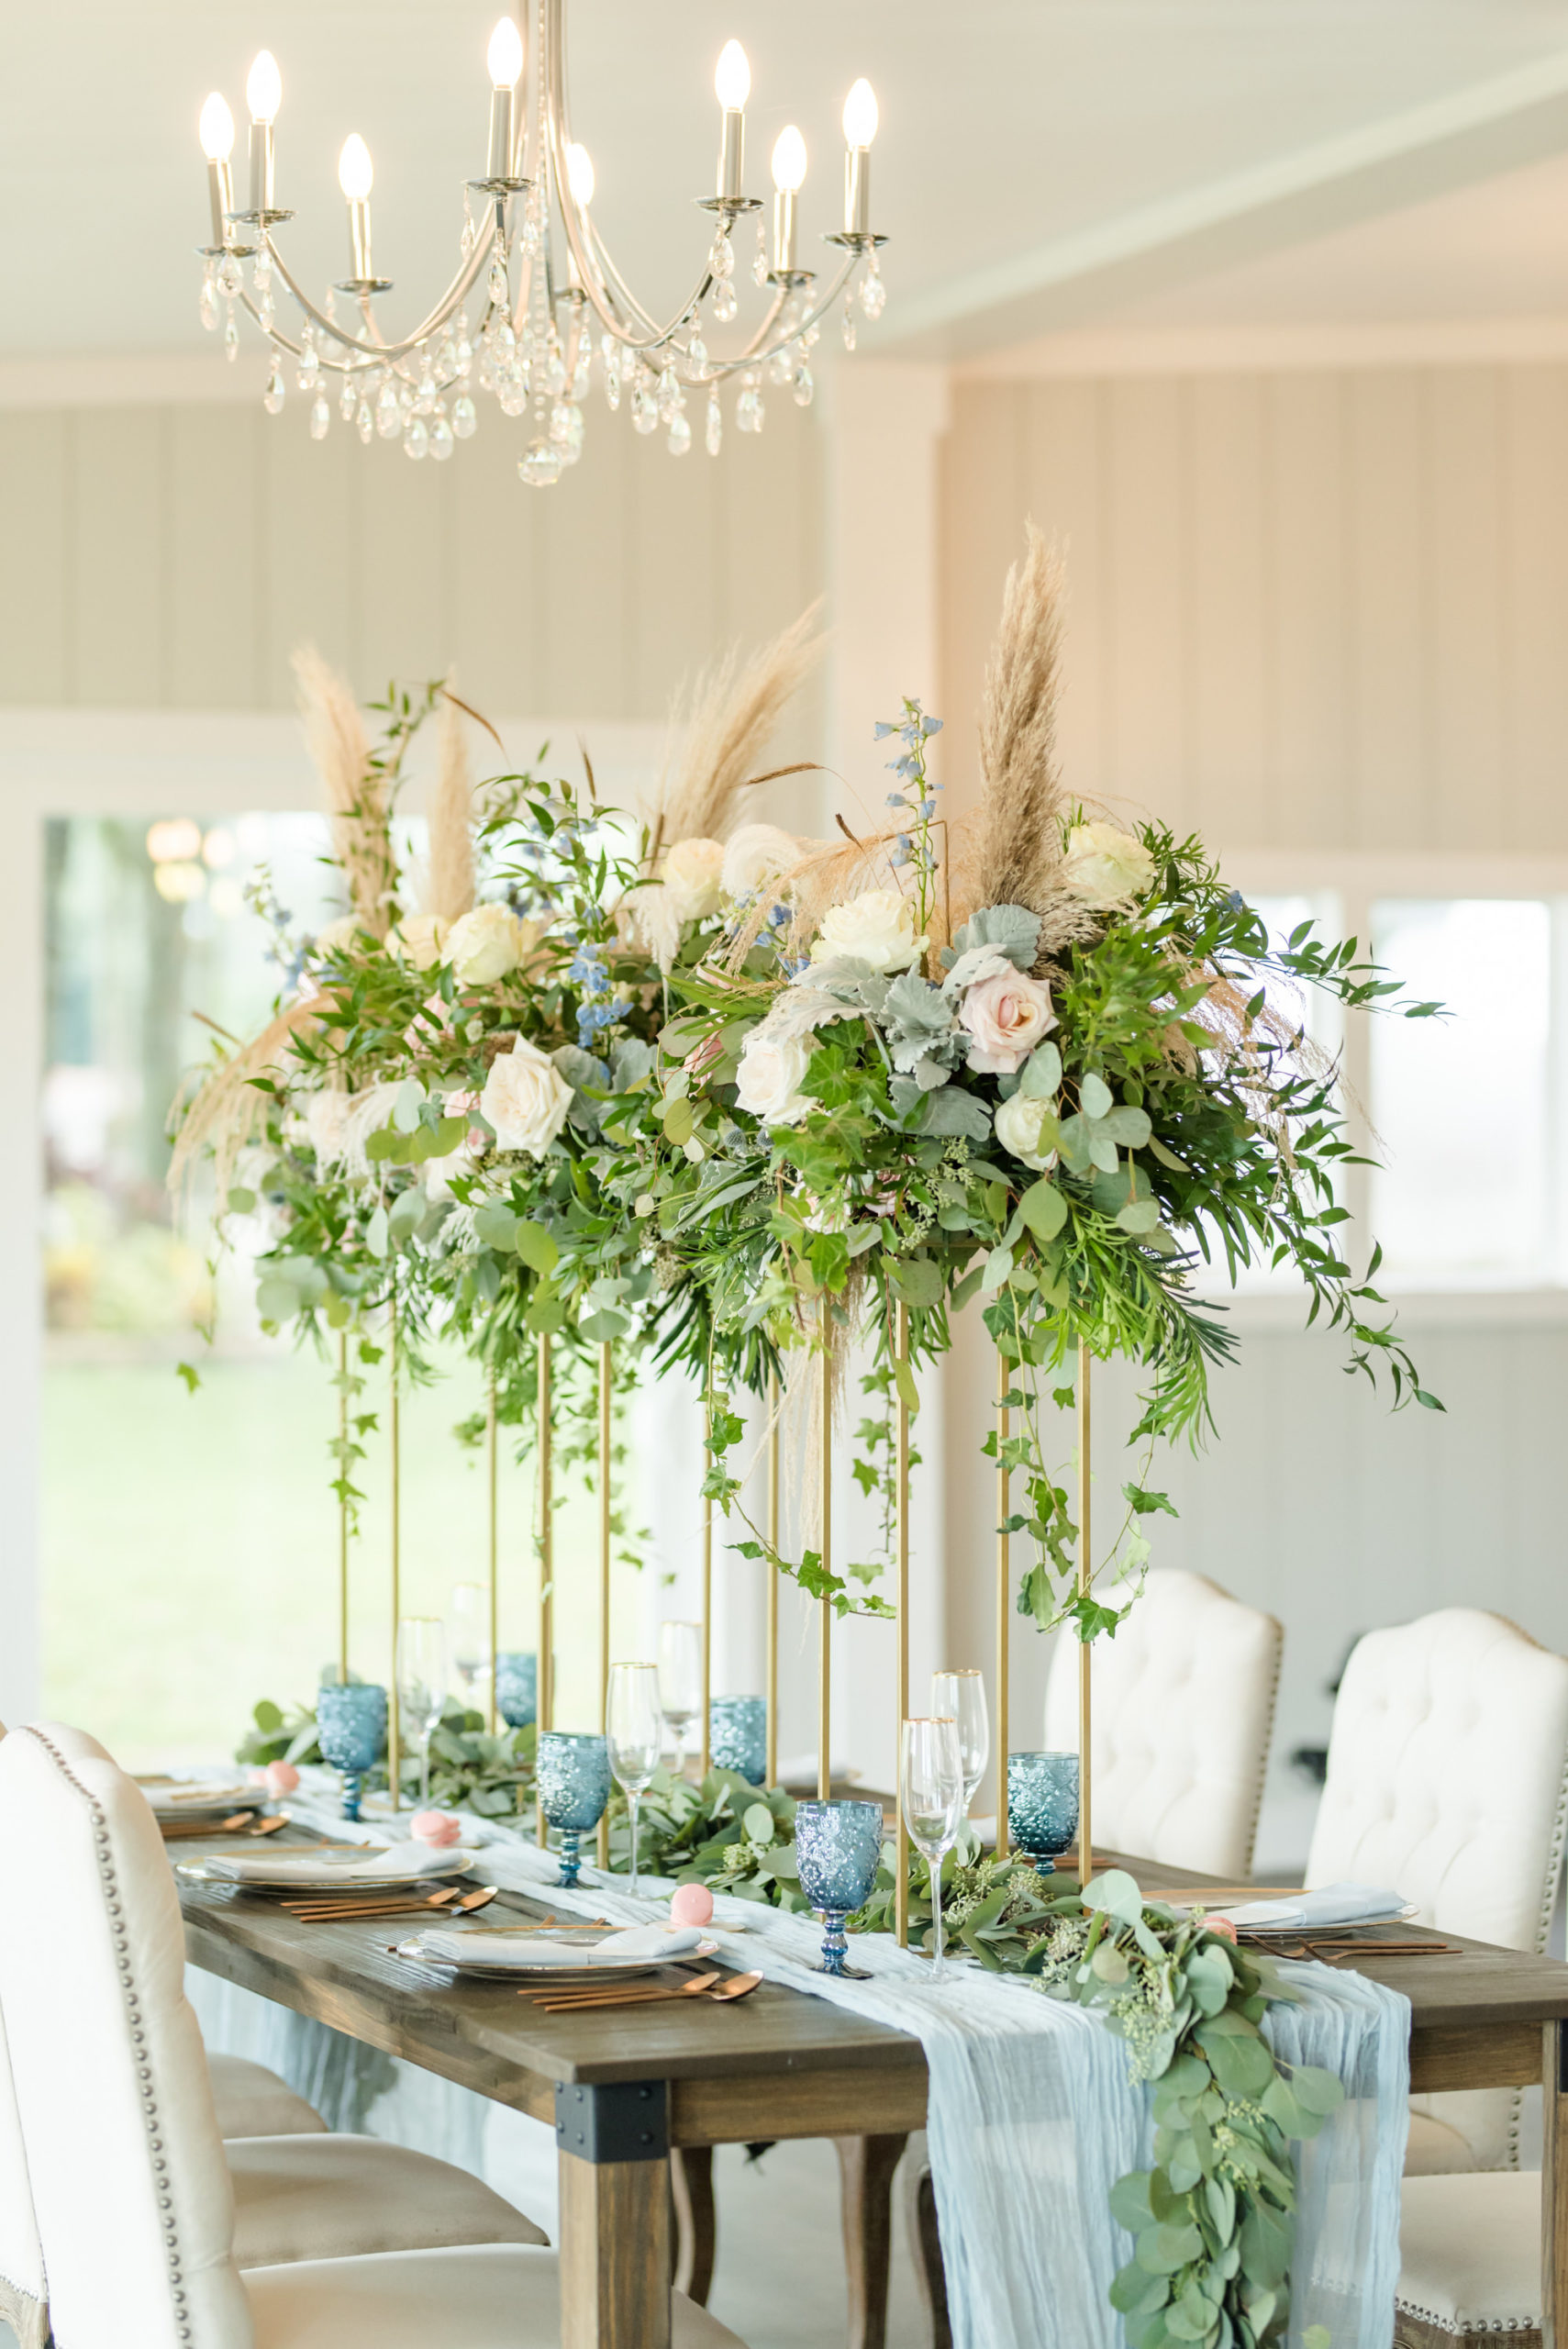 Dusty Rose Styled Wedding Shoot, Antique Off White Ivory Cushion Chairs, Wood Table with Tall Gold Frame Stands, Greenery, Blush Pink and White Roses, and Feather Floral Arrangements, Blue Wine Glasses, White Fabric and Eucalyptus Garland Table Runner   Tampa Bay Wedding Planner Elegant Affairs by Design   Odessa Rustic Waterfront Wedding Venue Barn at Crescent Lake